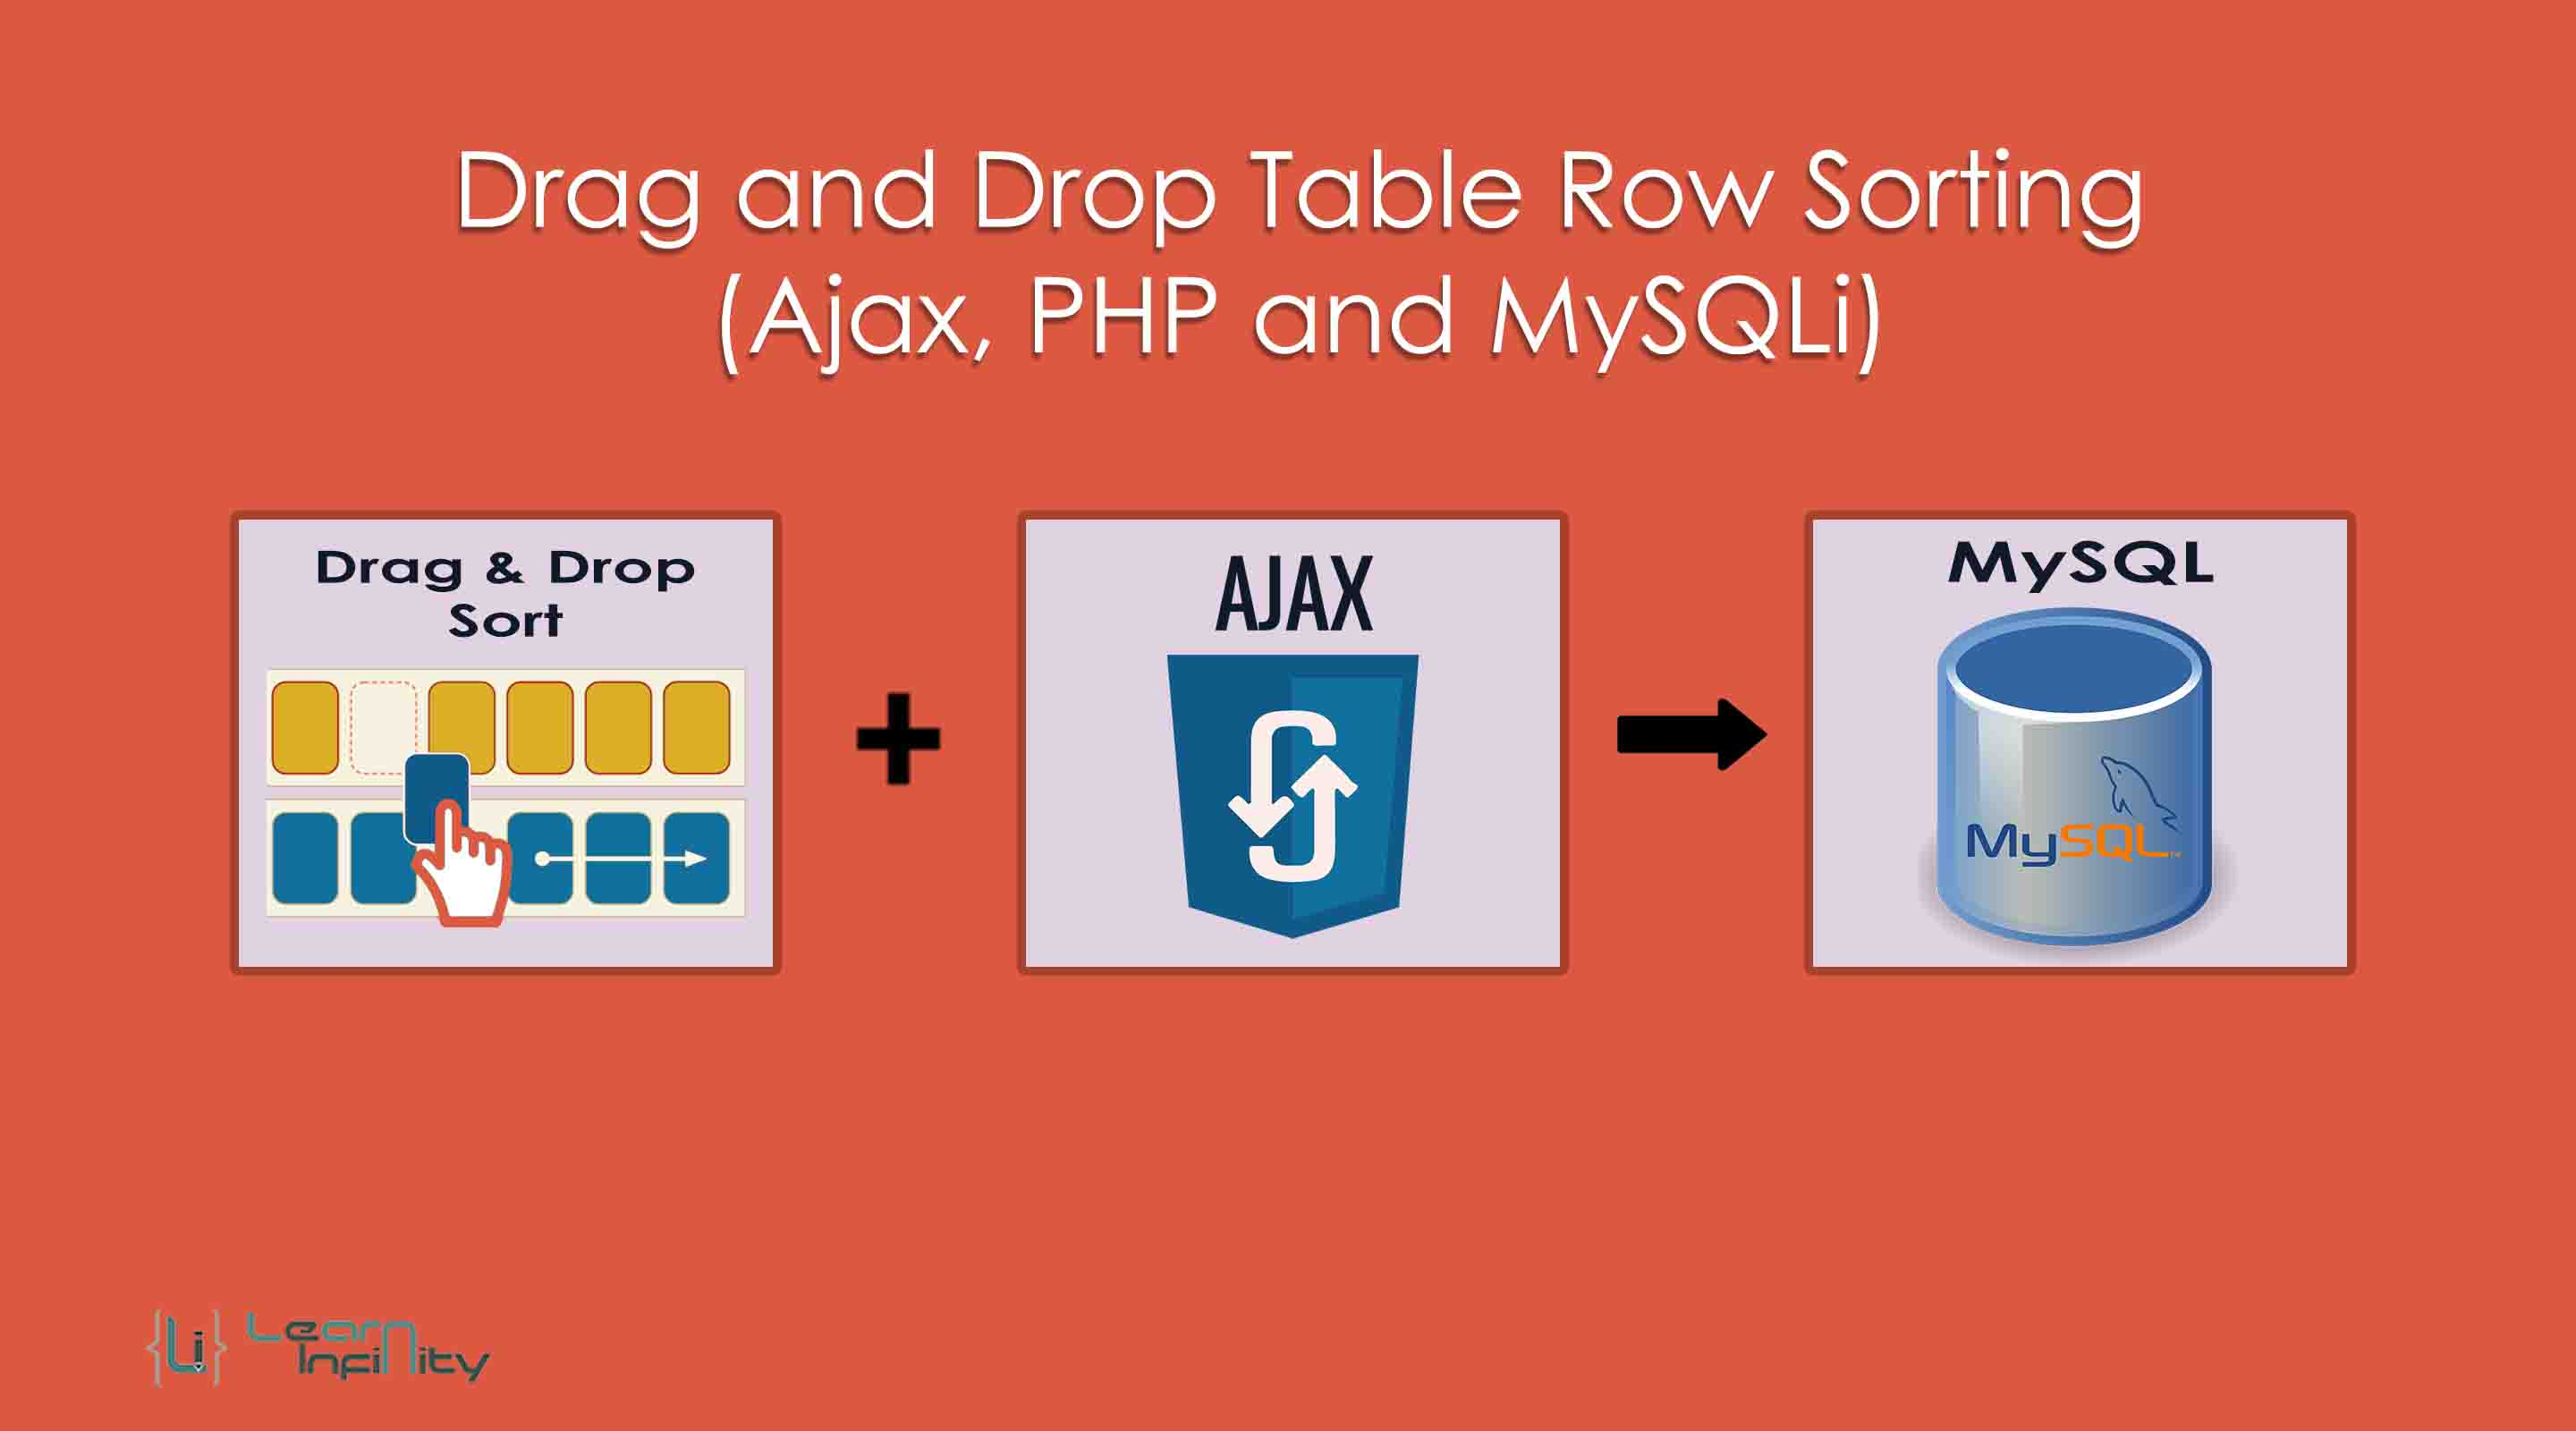 Drag and Drop Table Row Sorting (Ajax, PHP and MySQLi)